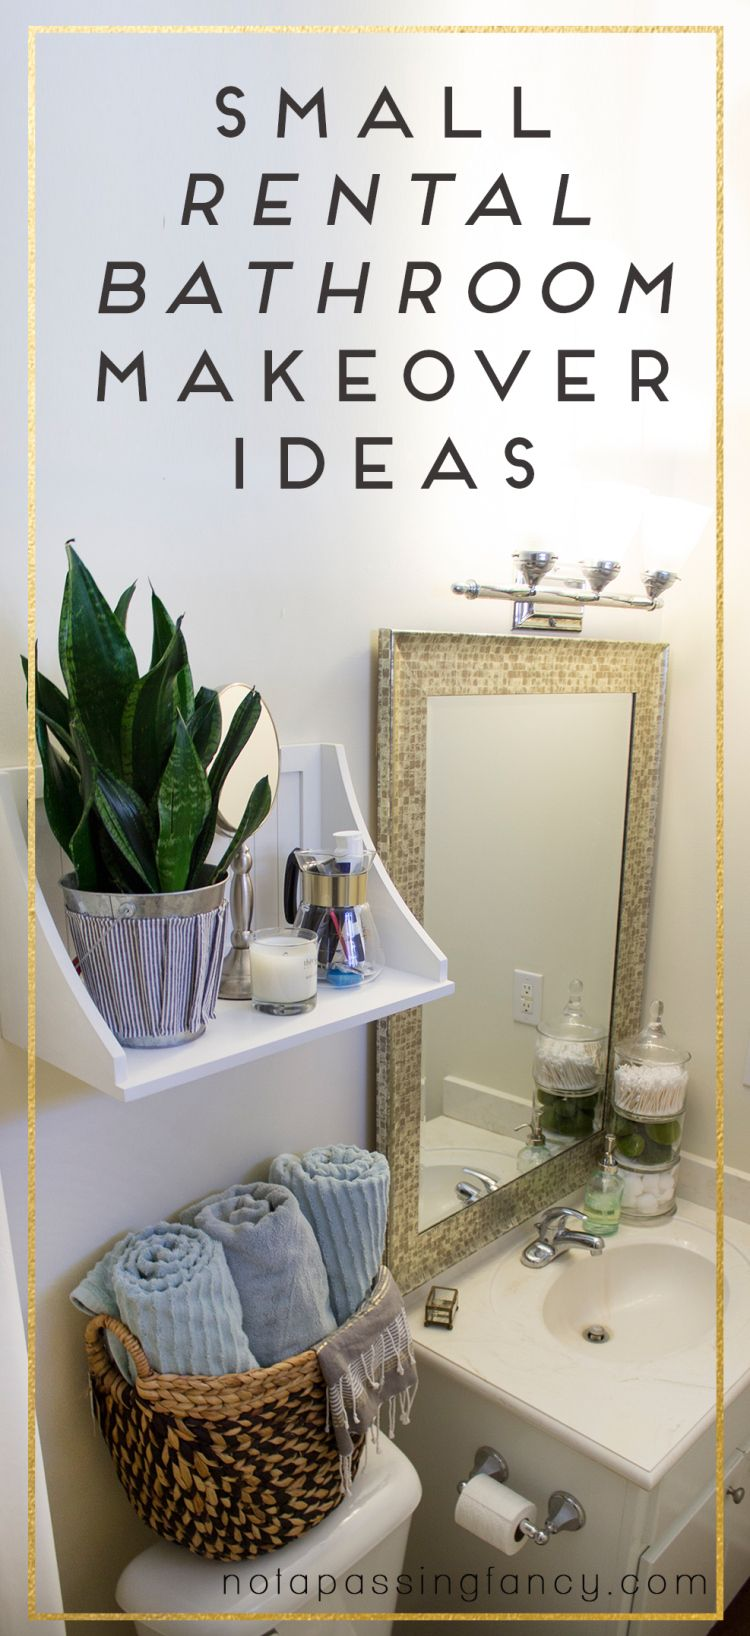 Small rental bathroom makeover ideas not a passing fancy for Small room rental